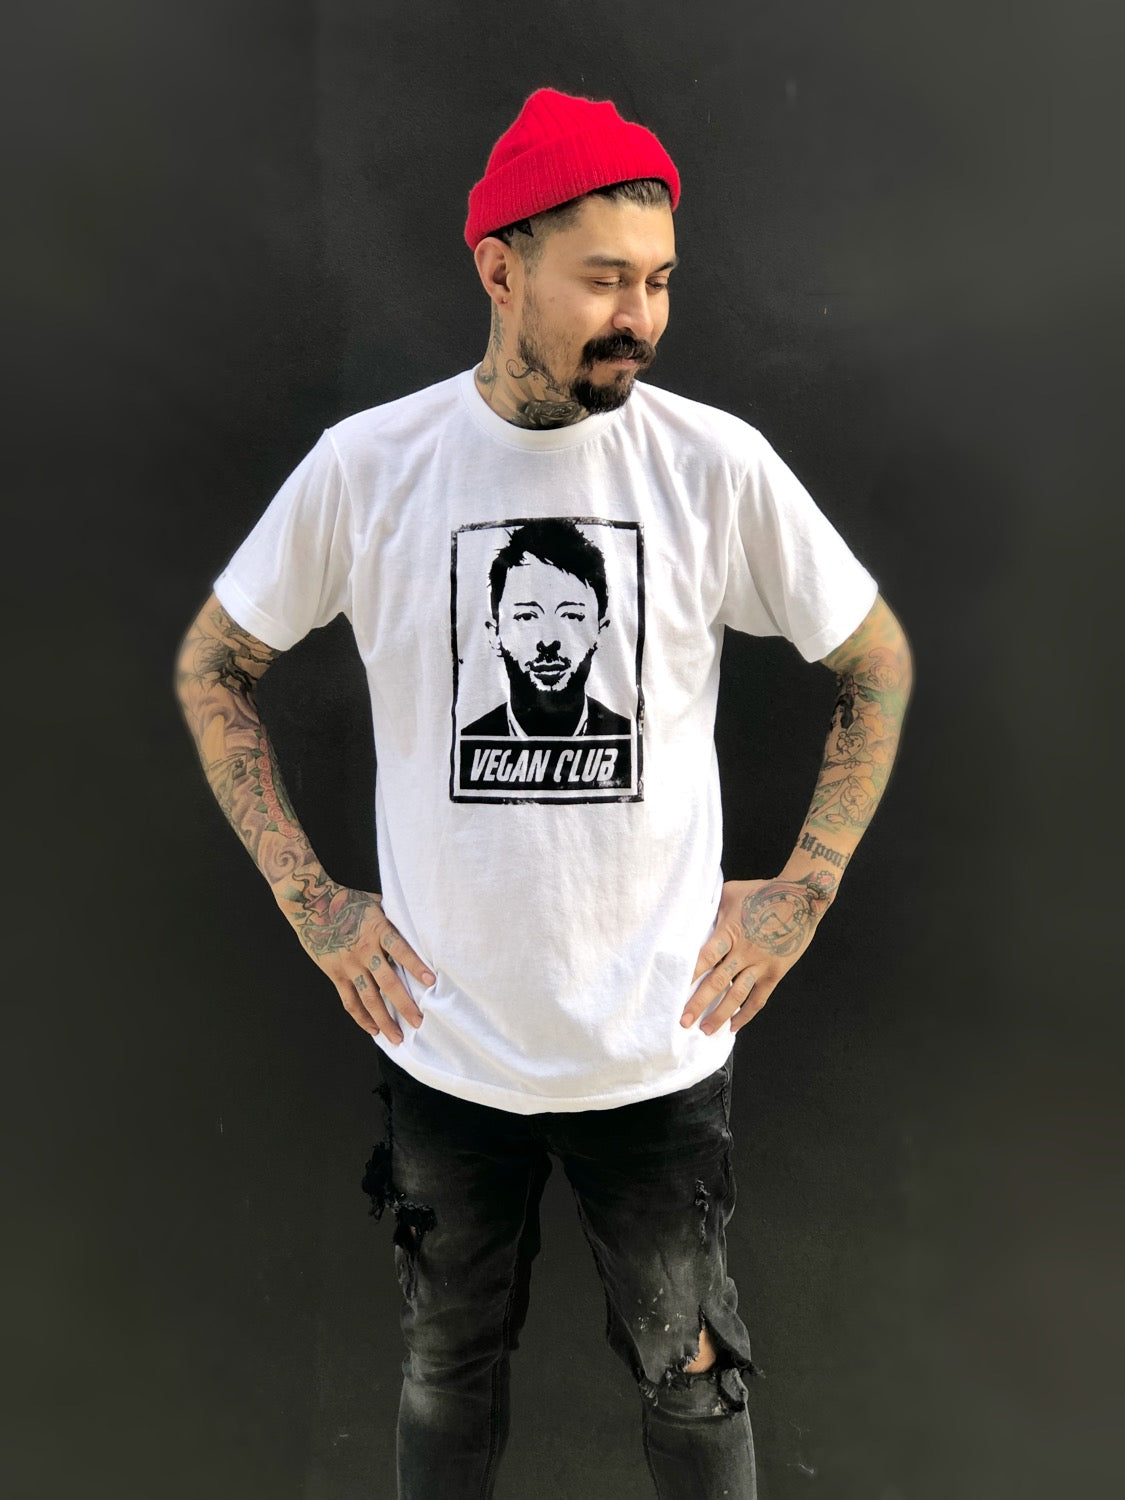 "Unisex T-shirt ""Vegan Club"" featuring Thom Yorke"